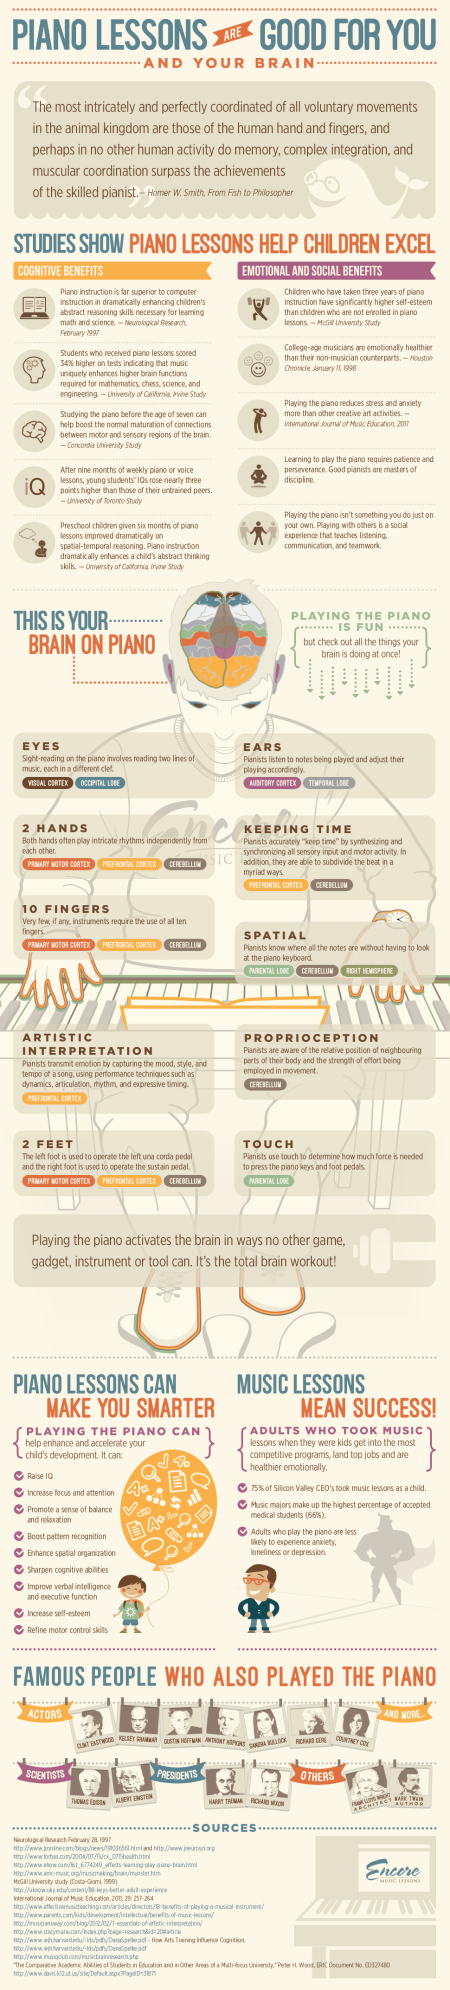 infographic-piano-lessons-are-good-for-you-and-your-brain-1